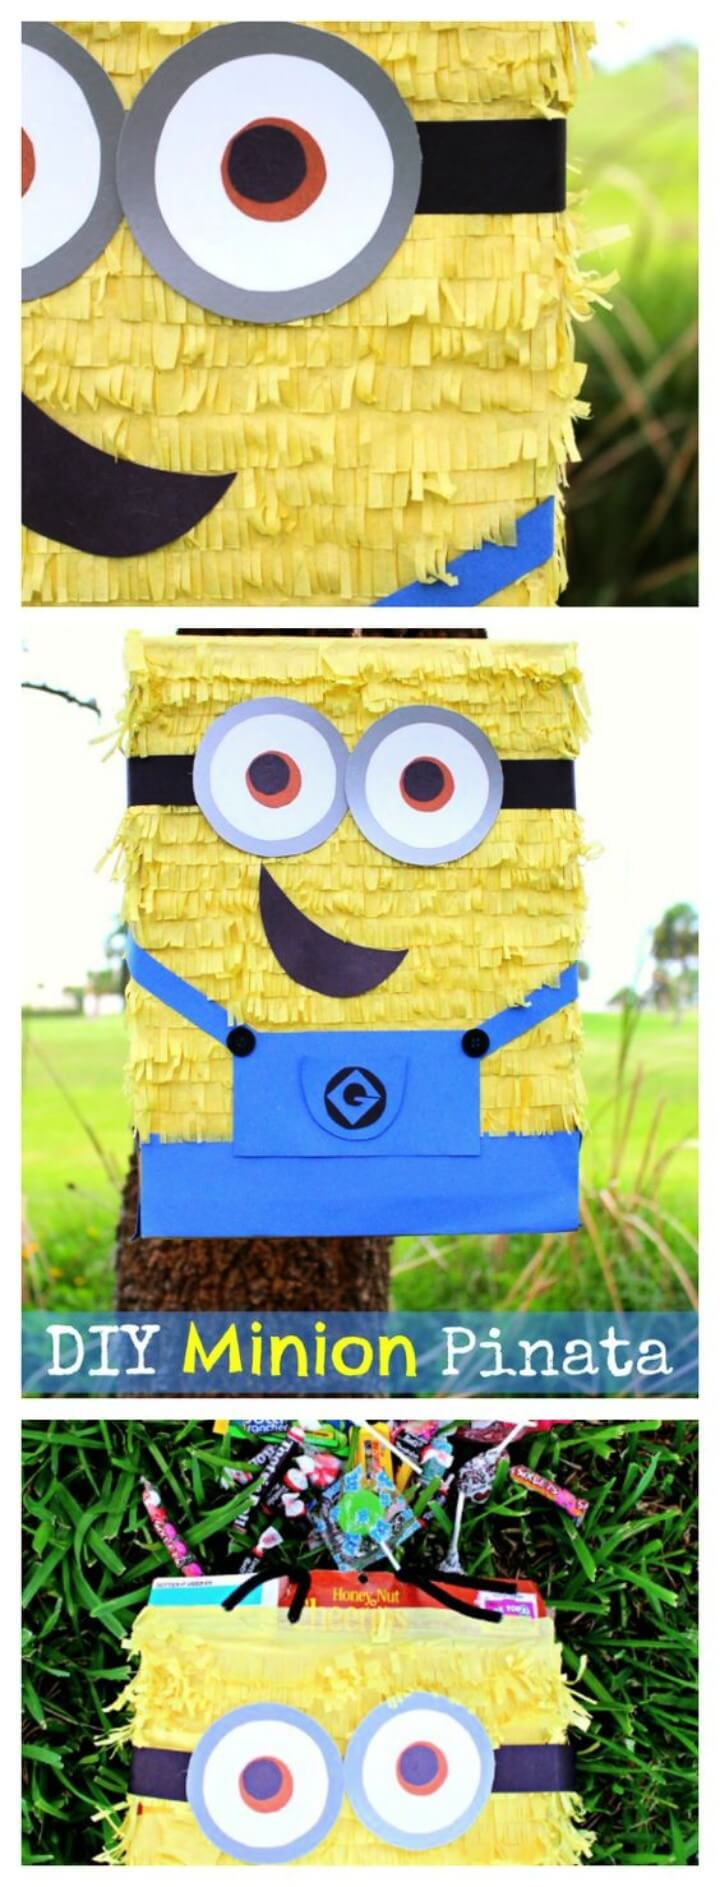 DIY Minion Pinata